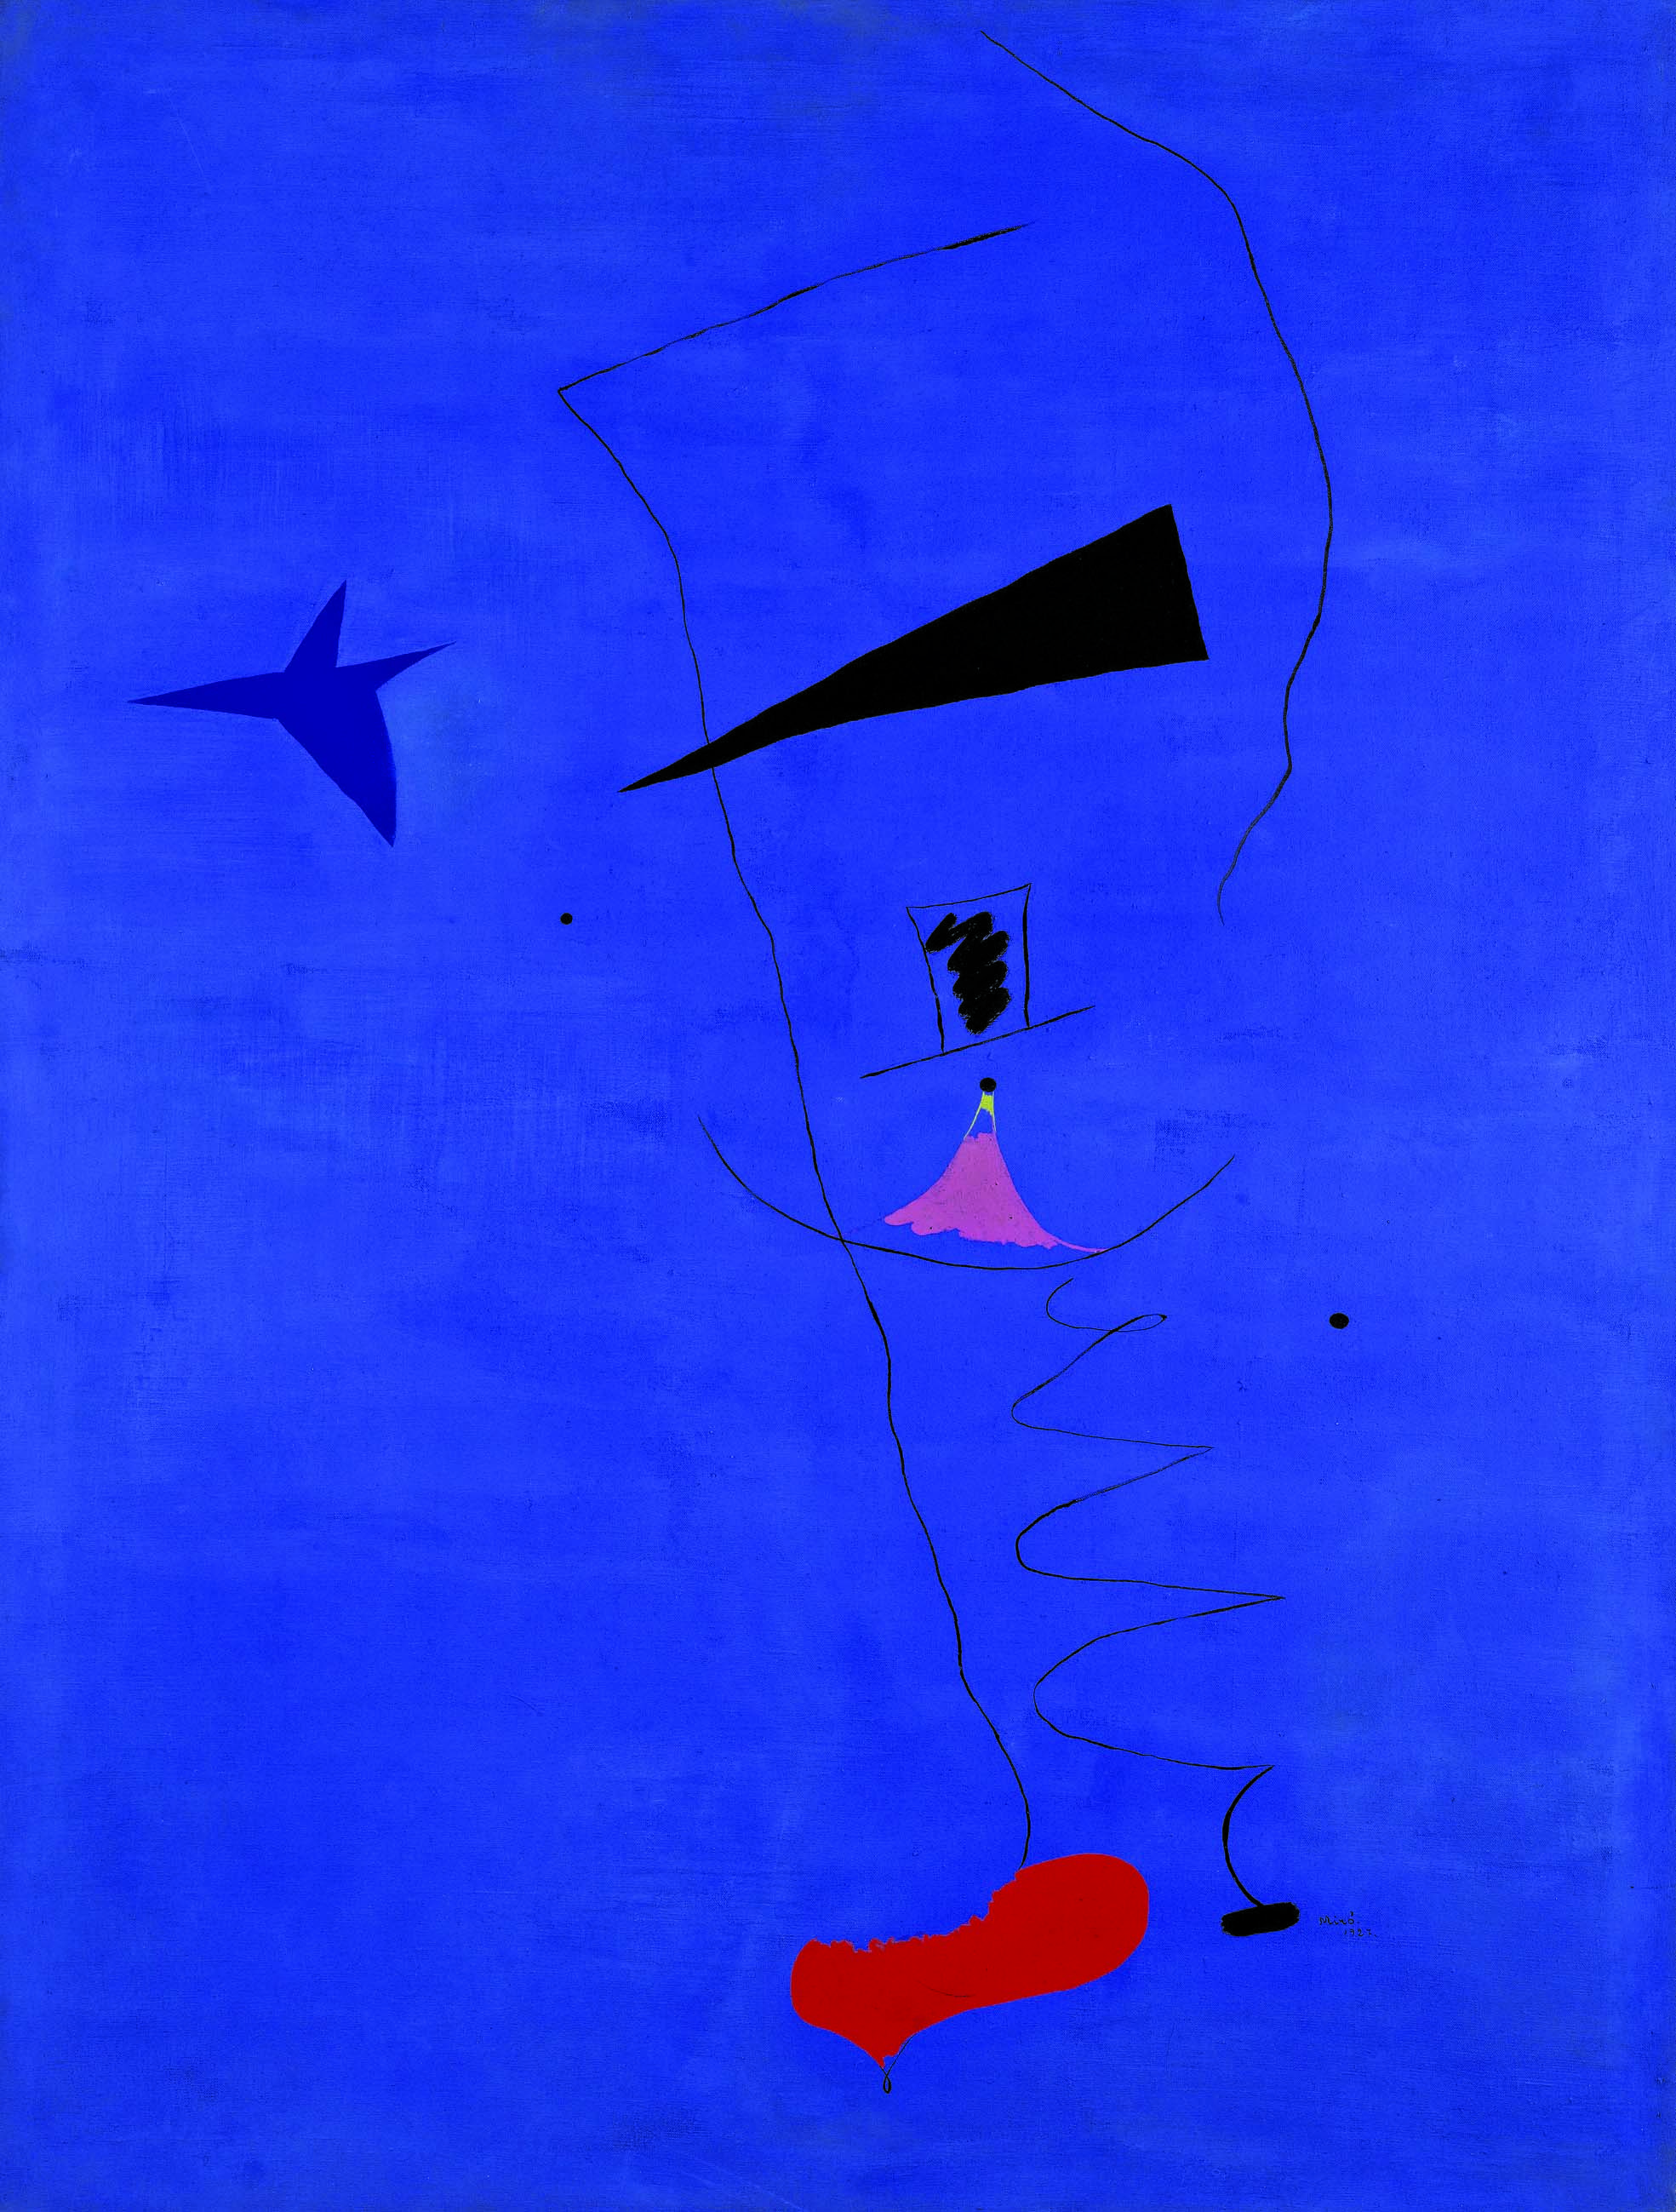 Joan Miro Holly Brackenbury Selects Peinture Étoile Bleue By Joan